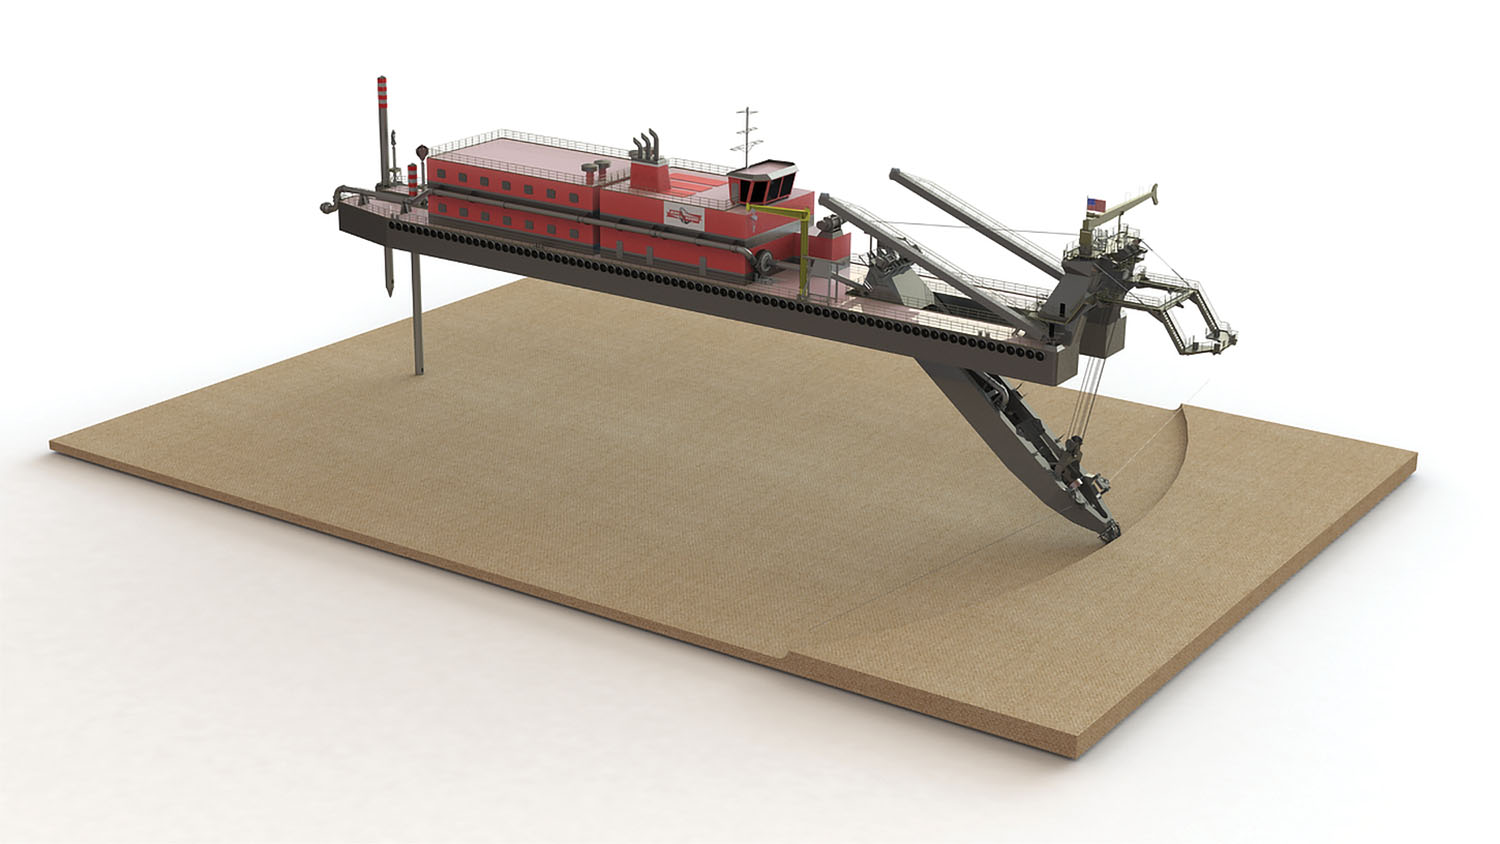 Concept design of the new 27-inch cutter suction dredge to be built for Mike Hooks LLC by Mobile Pulley Works.